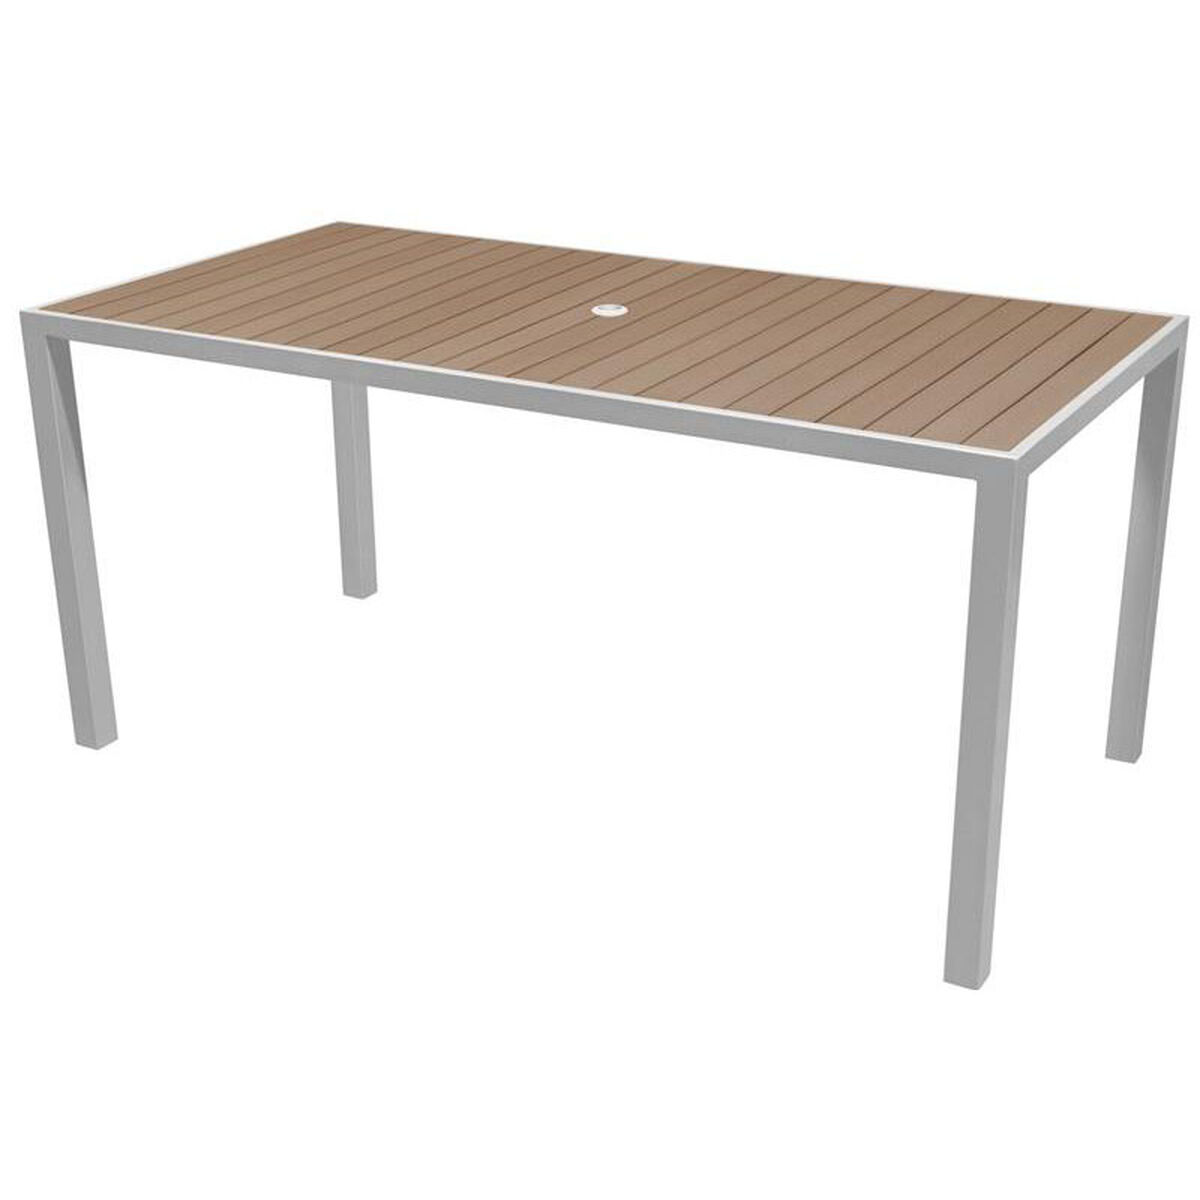 Source contract sedona 36 39 39 x 108 39 39 rectangular table with for 108 table seats how many